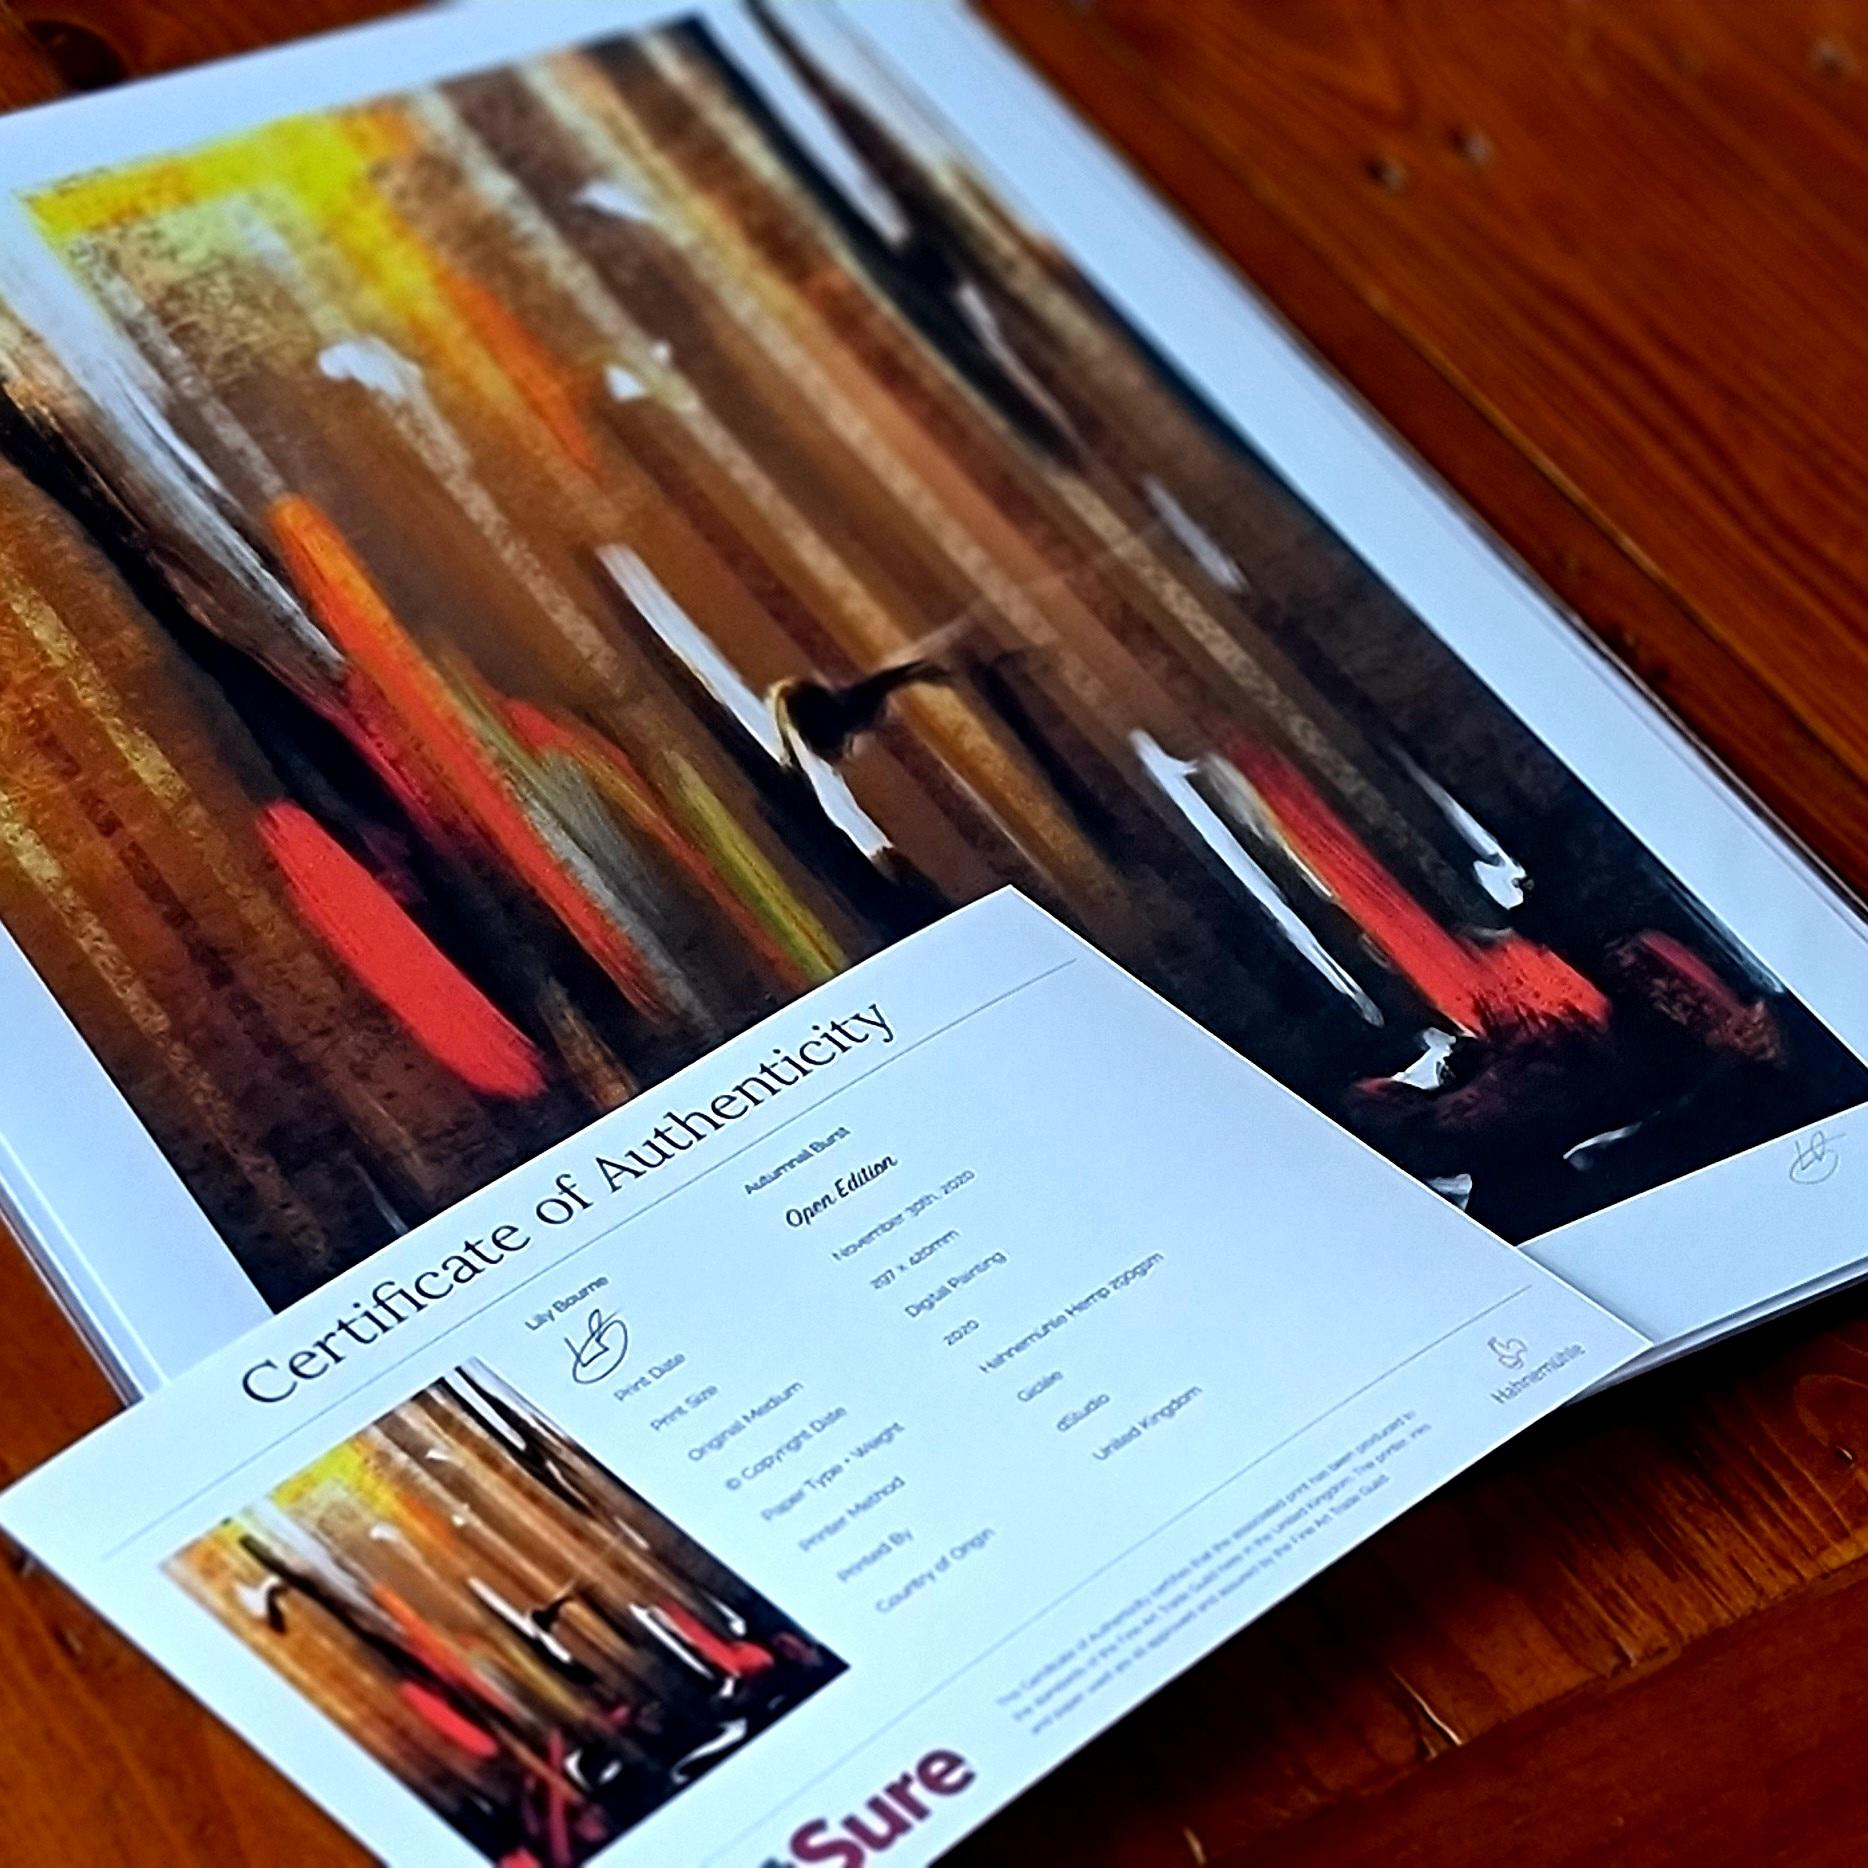 An abstract digital painting by Lily Bourne printed on eco fine art paper titled Autumnal Burst showing orange, red, white and black downward strokes portraying trees with the colours of autumn. Print shown with certificate.